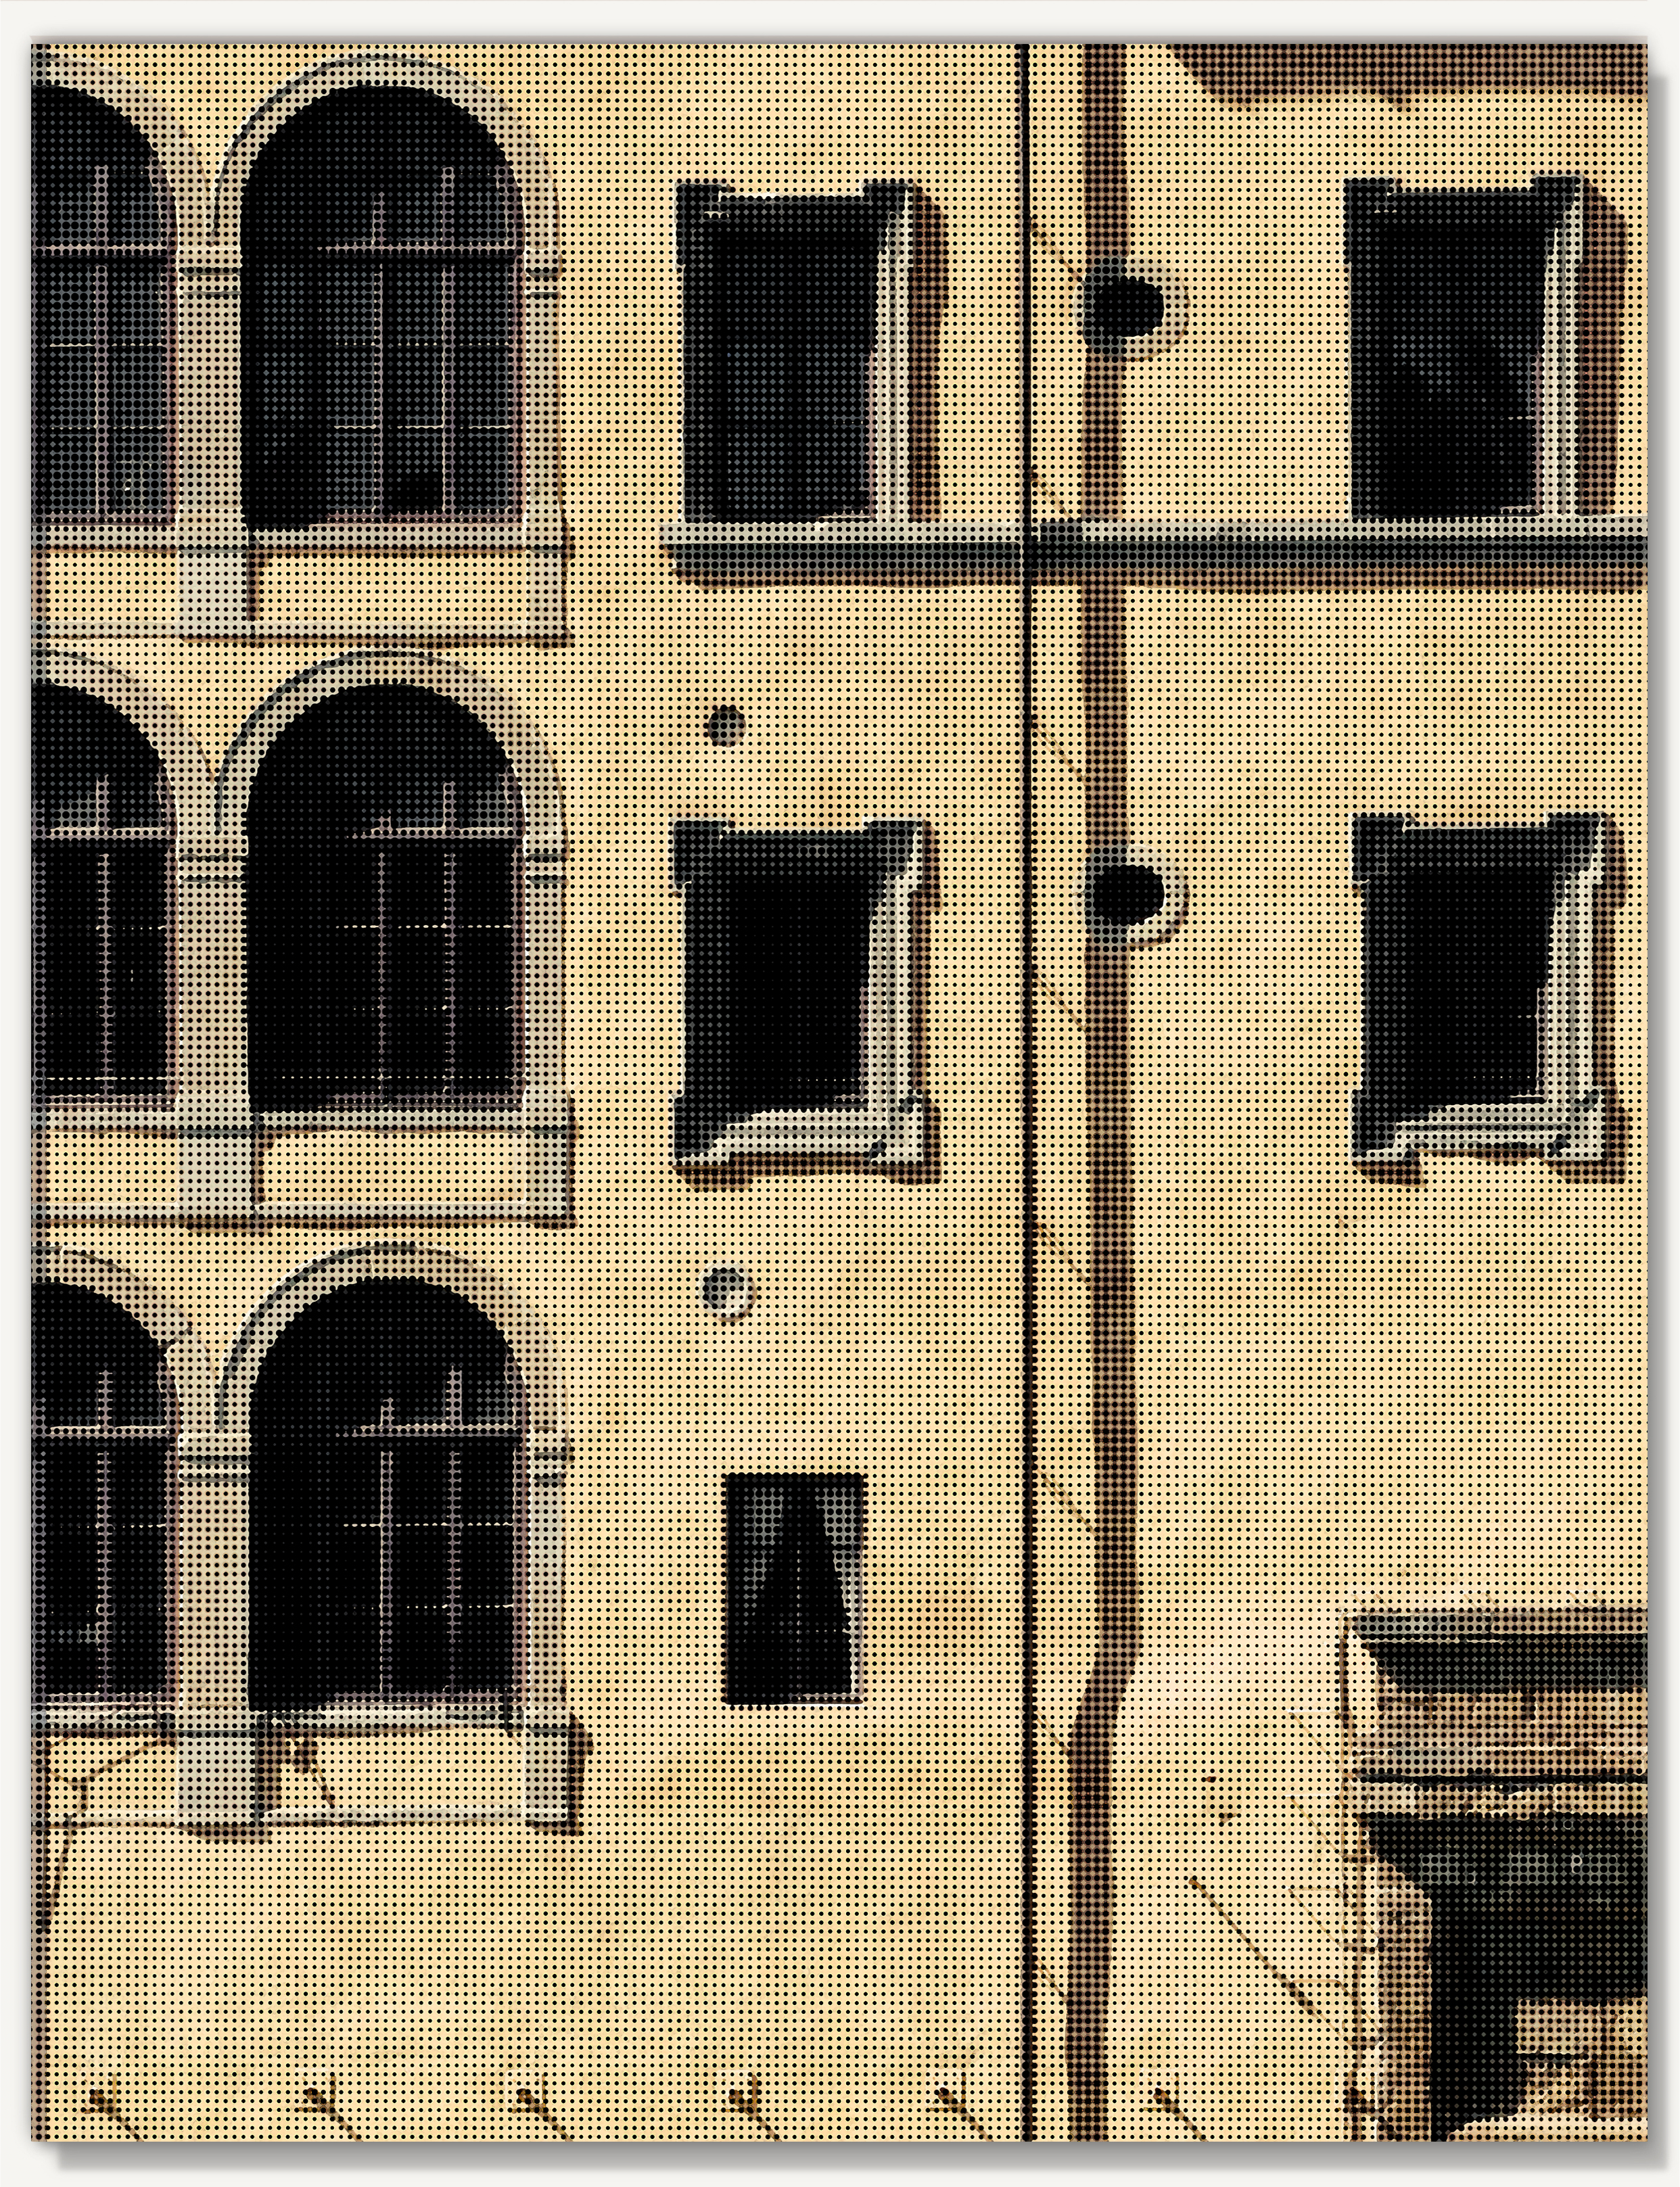 FLORENCE ITALY - Graphic with Border -- SMALL.jpg